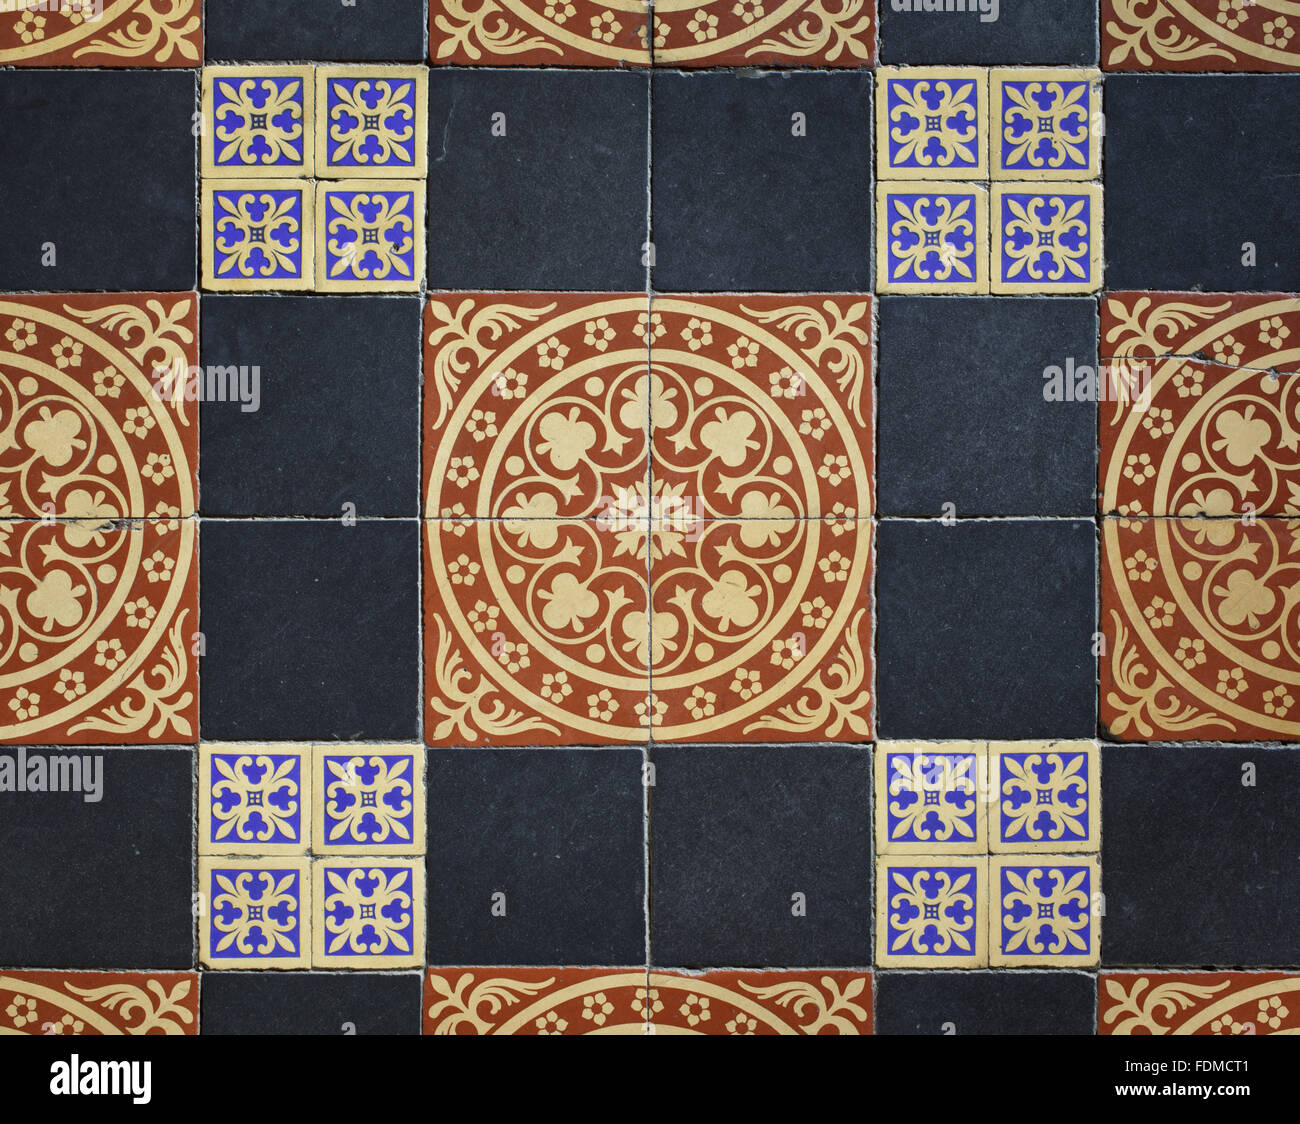 Detail of floor tiles installed in the Porch by Sir Charles Barry in 1851 at Gawthorpe Hall, Lancashire. - Stock Image